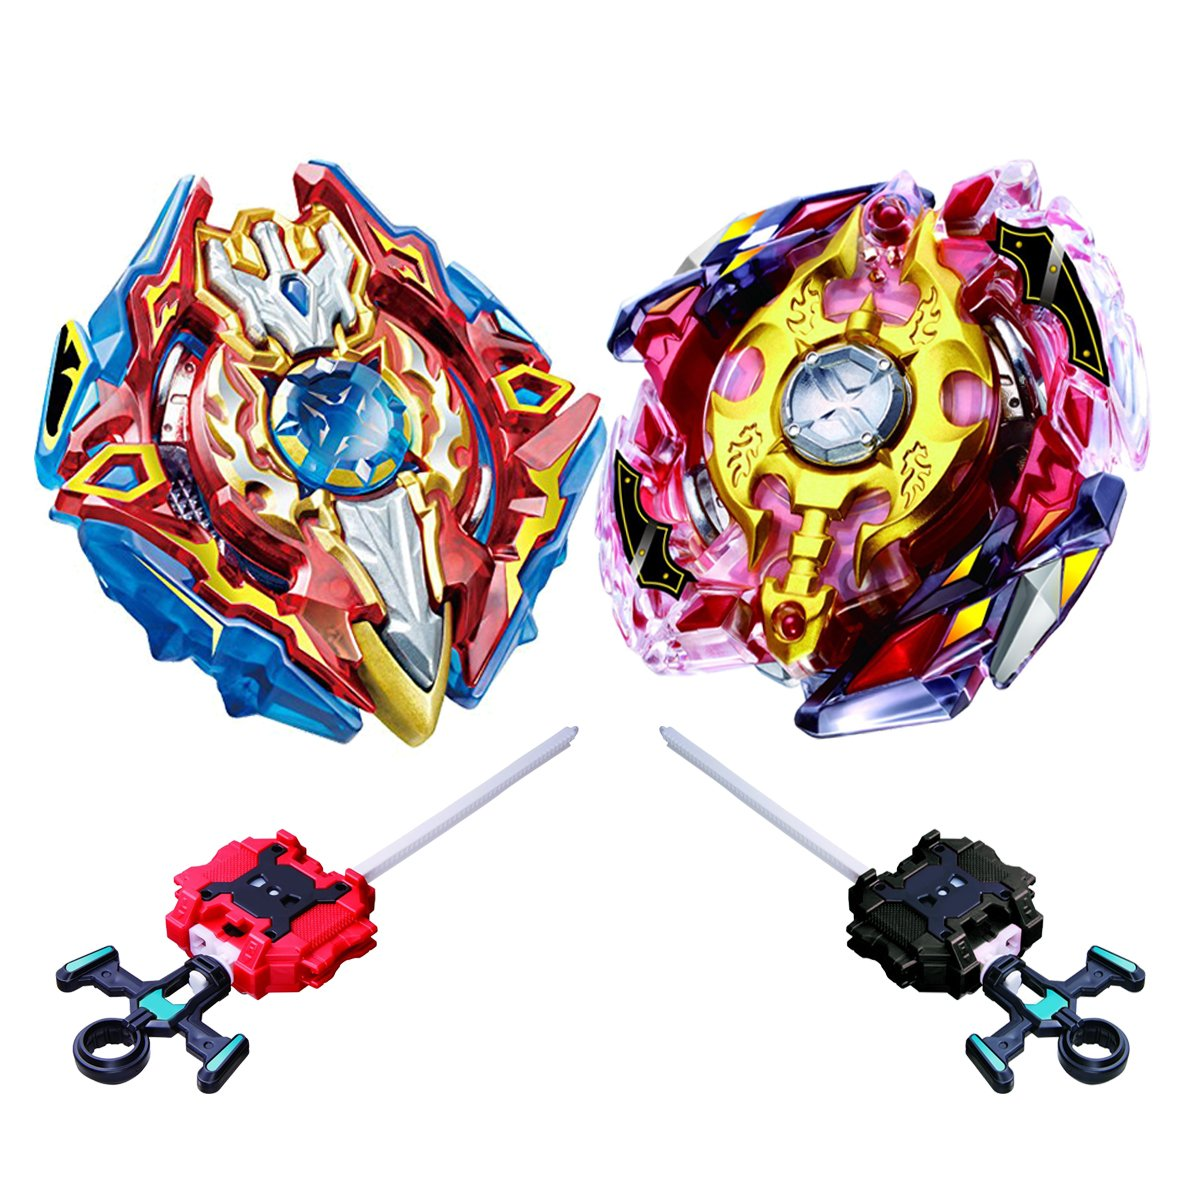 Check Out BeybladeProducts On Amazon!